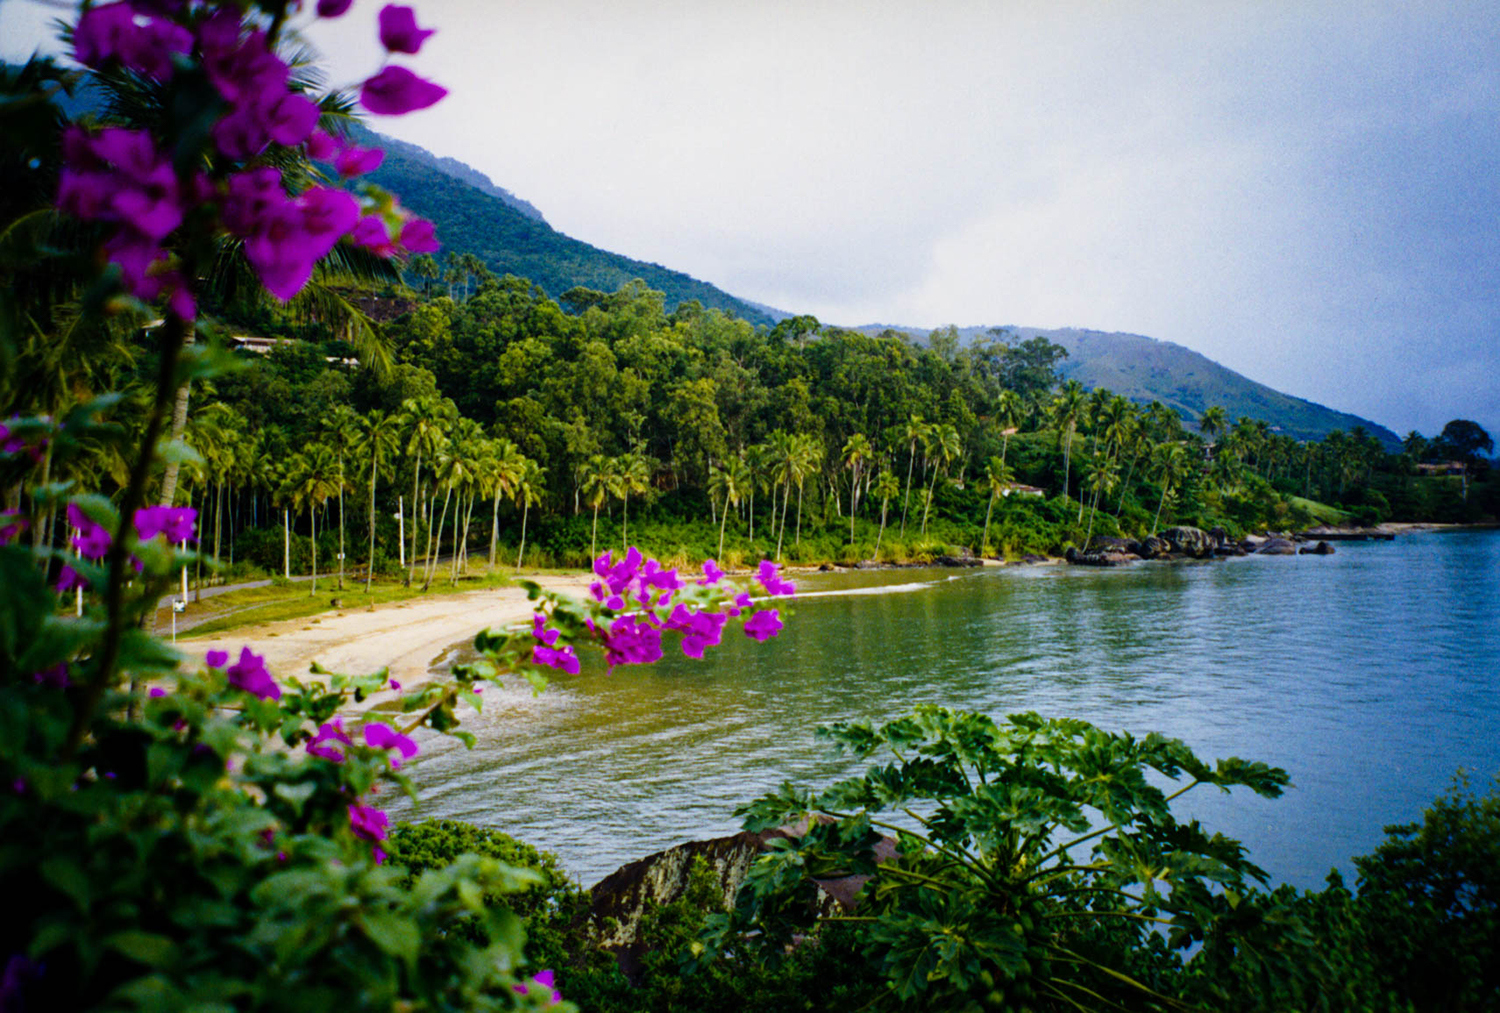 <p>A small beach on Ilhabela, a mountainous island not so distant – and yet a world away – from the urban expanse of São Paulo.</p>